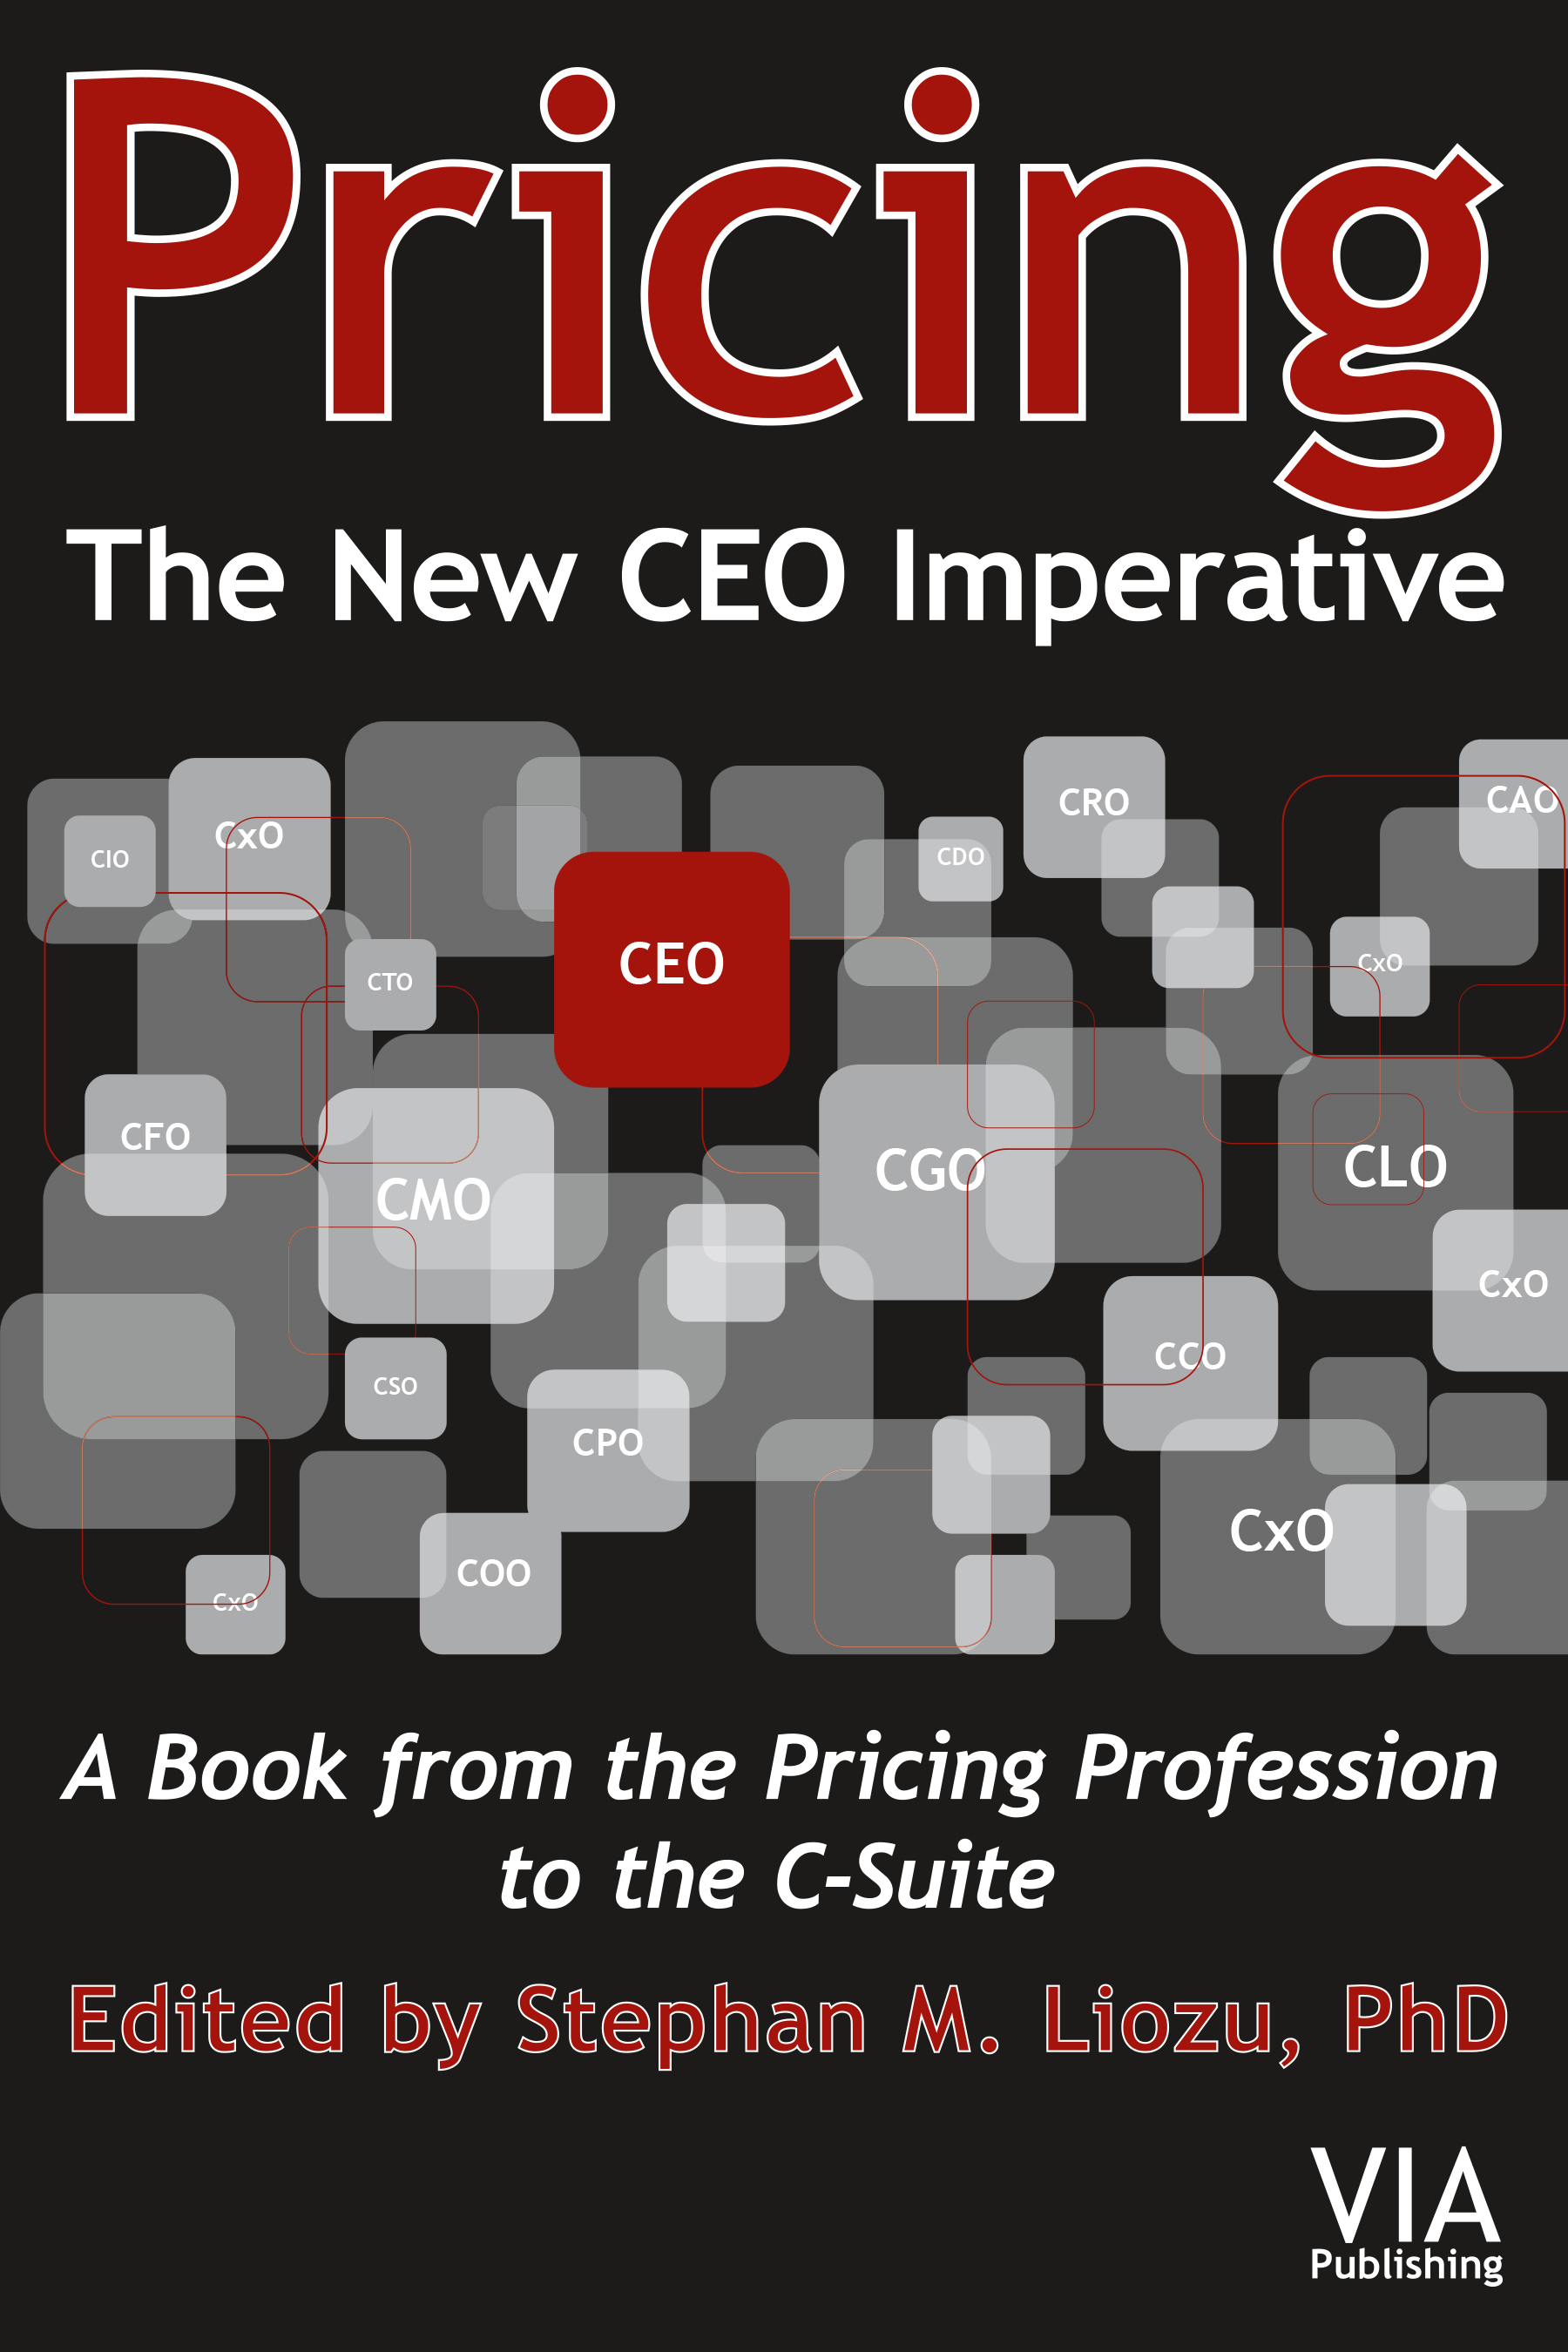 [EXCERPT] Pricing – The New CEO Imperative